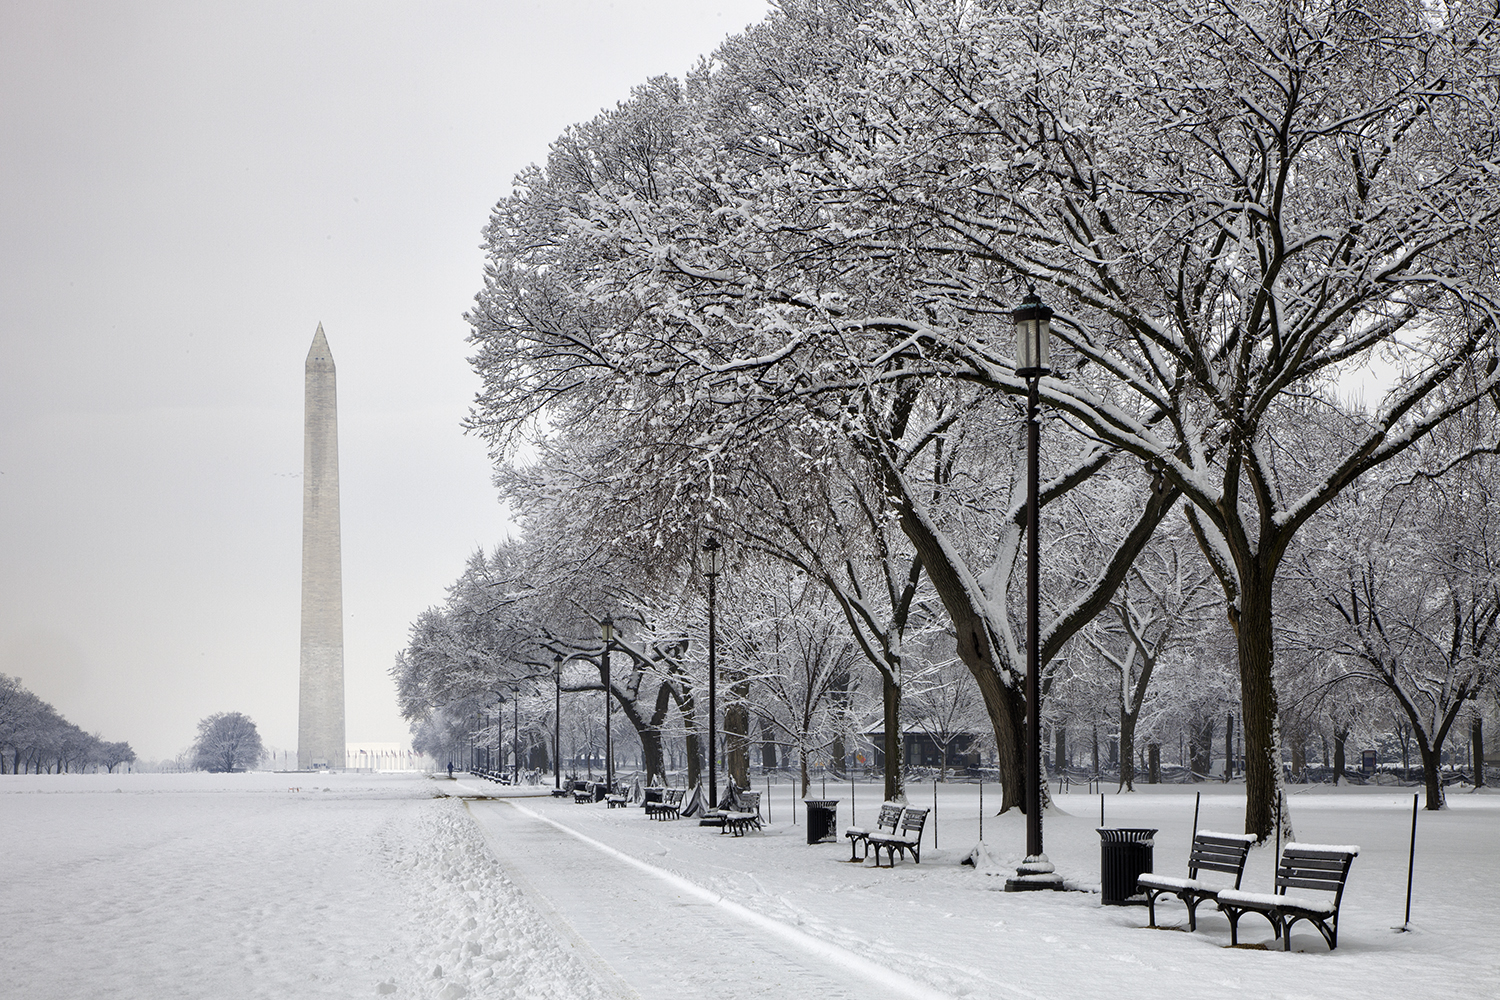 February Morning on the Mall